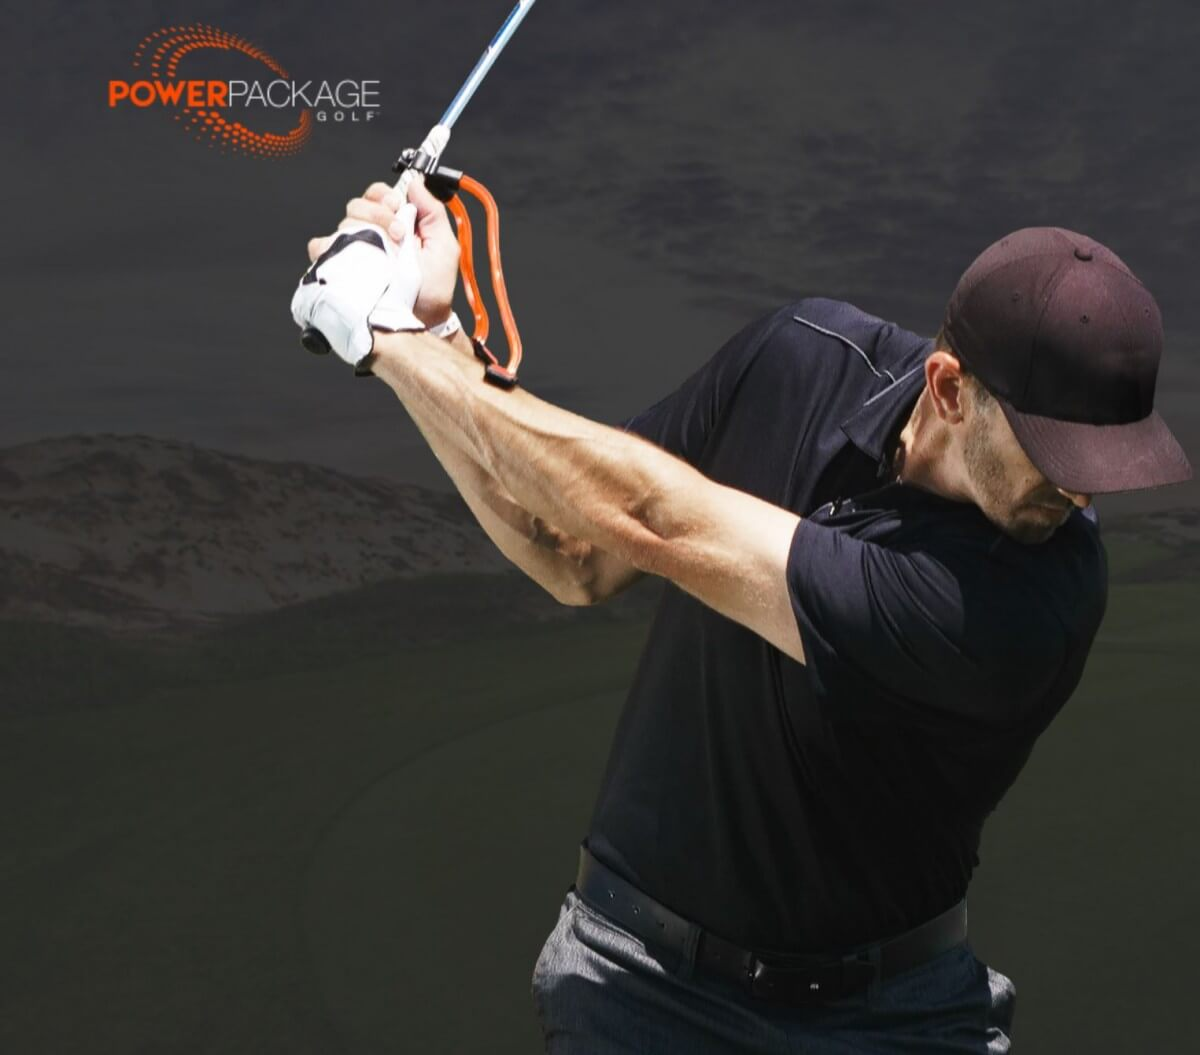 The Power Package Golf Swing Practice Aid